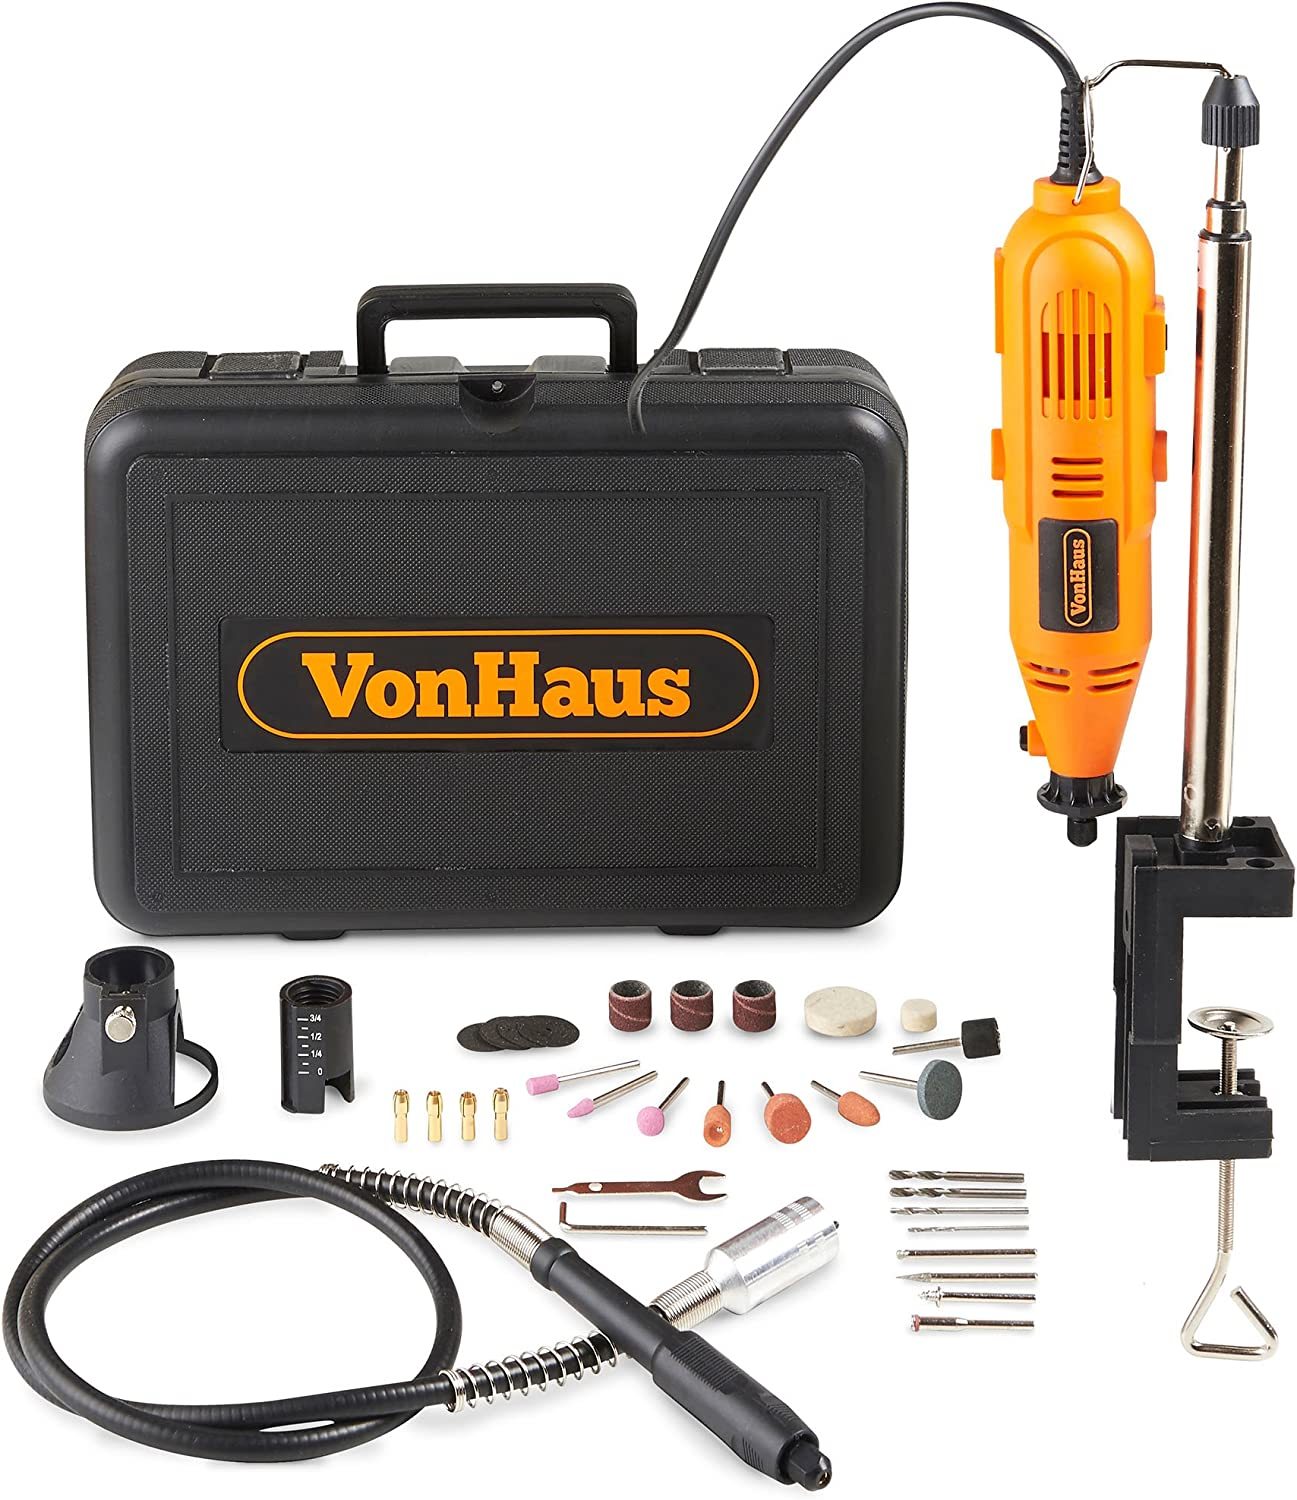 VonHaus Variable Speed Rotary Tool Set